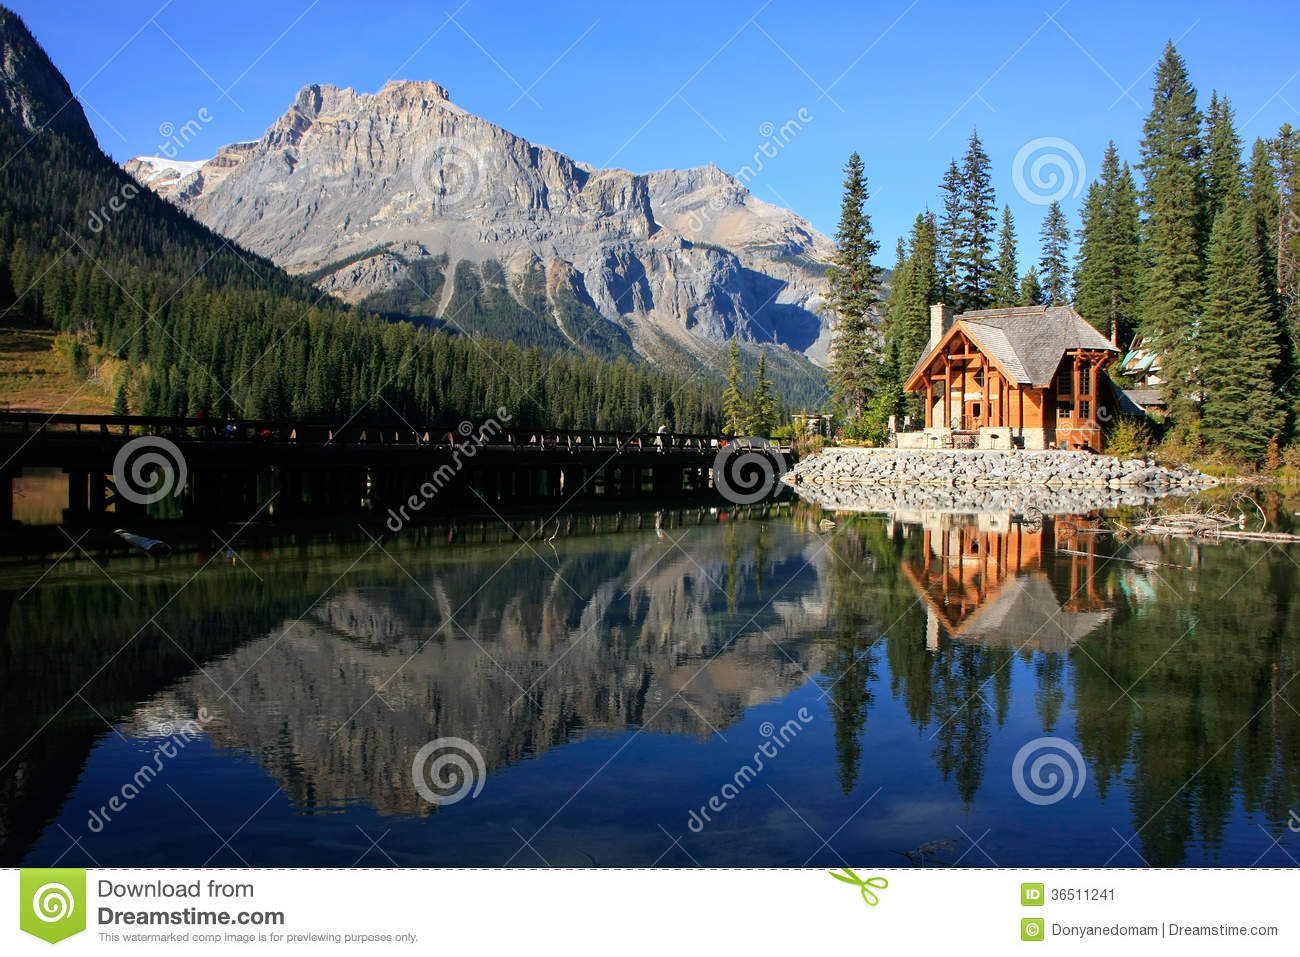 holzhaus bei emerald lake yoho national park kanada. Black Bedroom Furniture Sets. Home Design Ideas